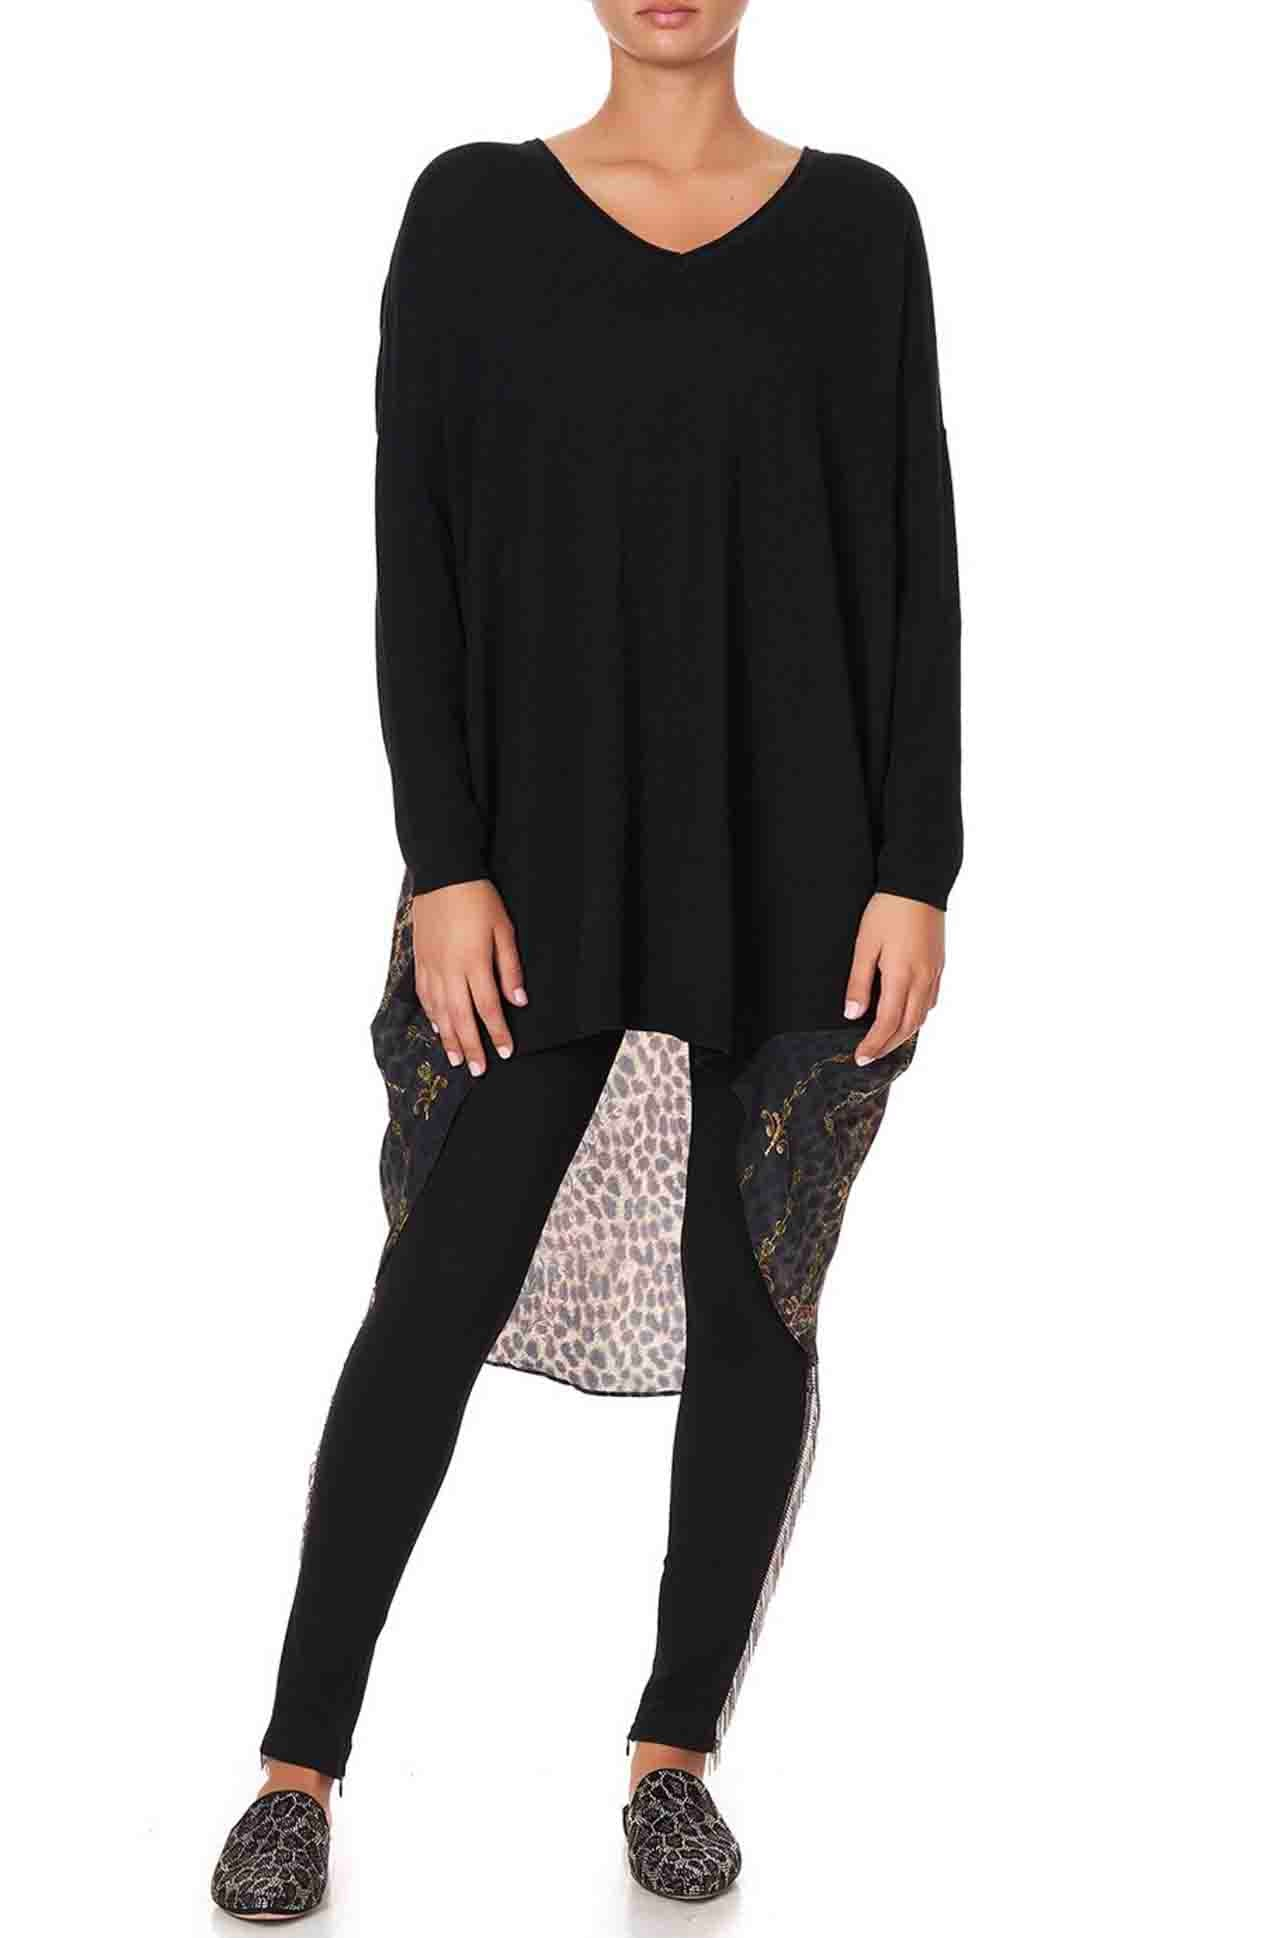 Camilla - Abingdon Palace V Neck Jumper w/ Print Back